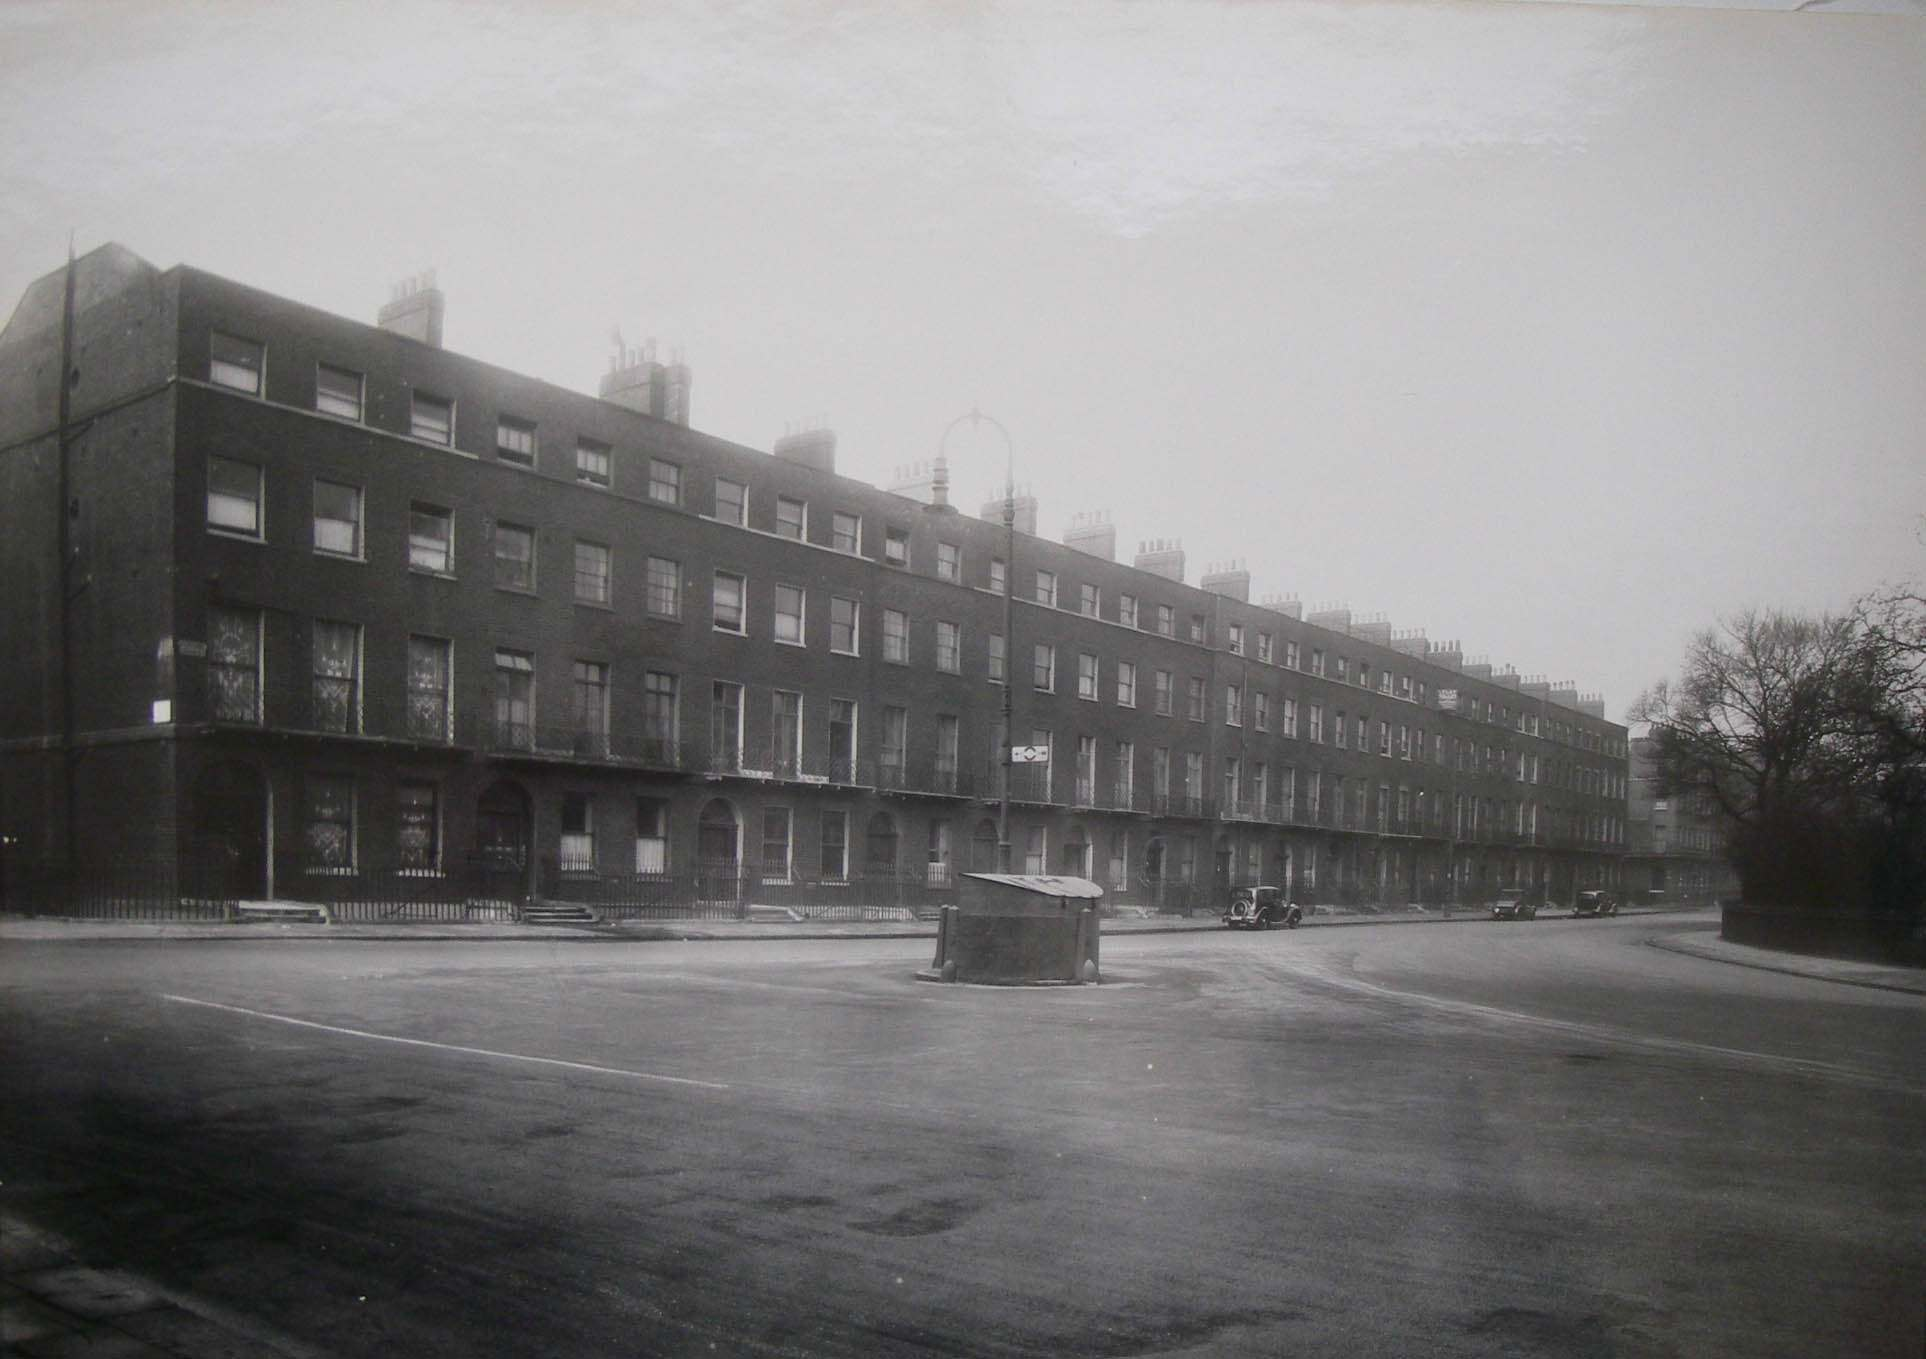 The original terrace in Bloomsbury where the Brunswick Centre is now.